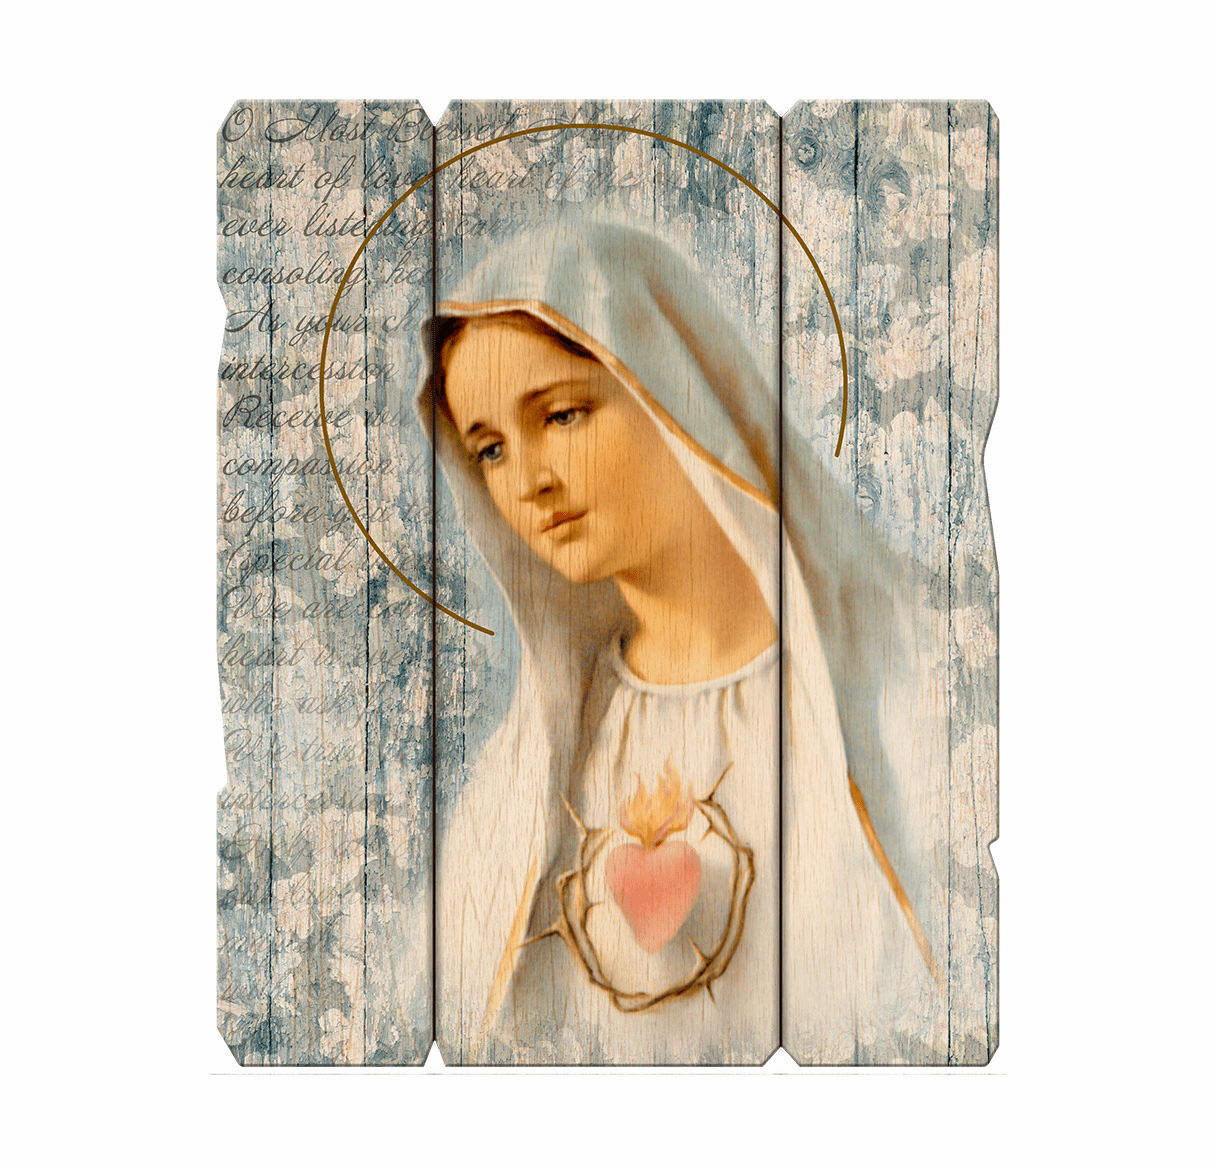 Hirten Immaculate Heart Of Mary Vintage Wall Plaque